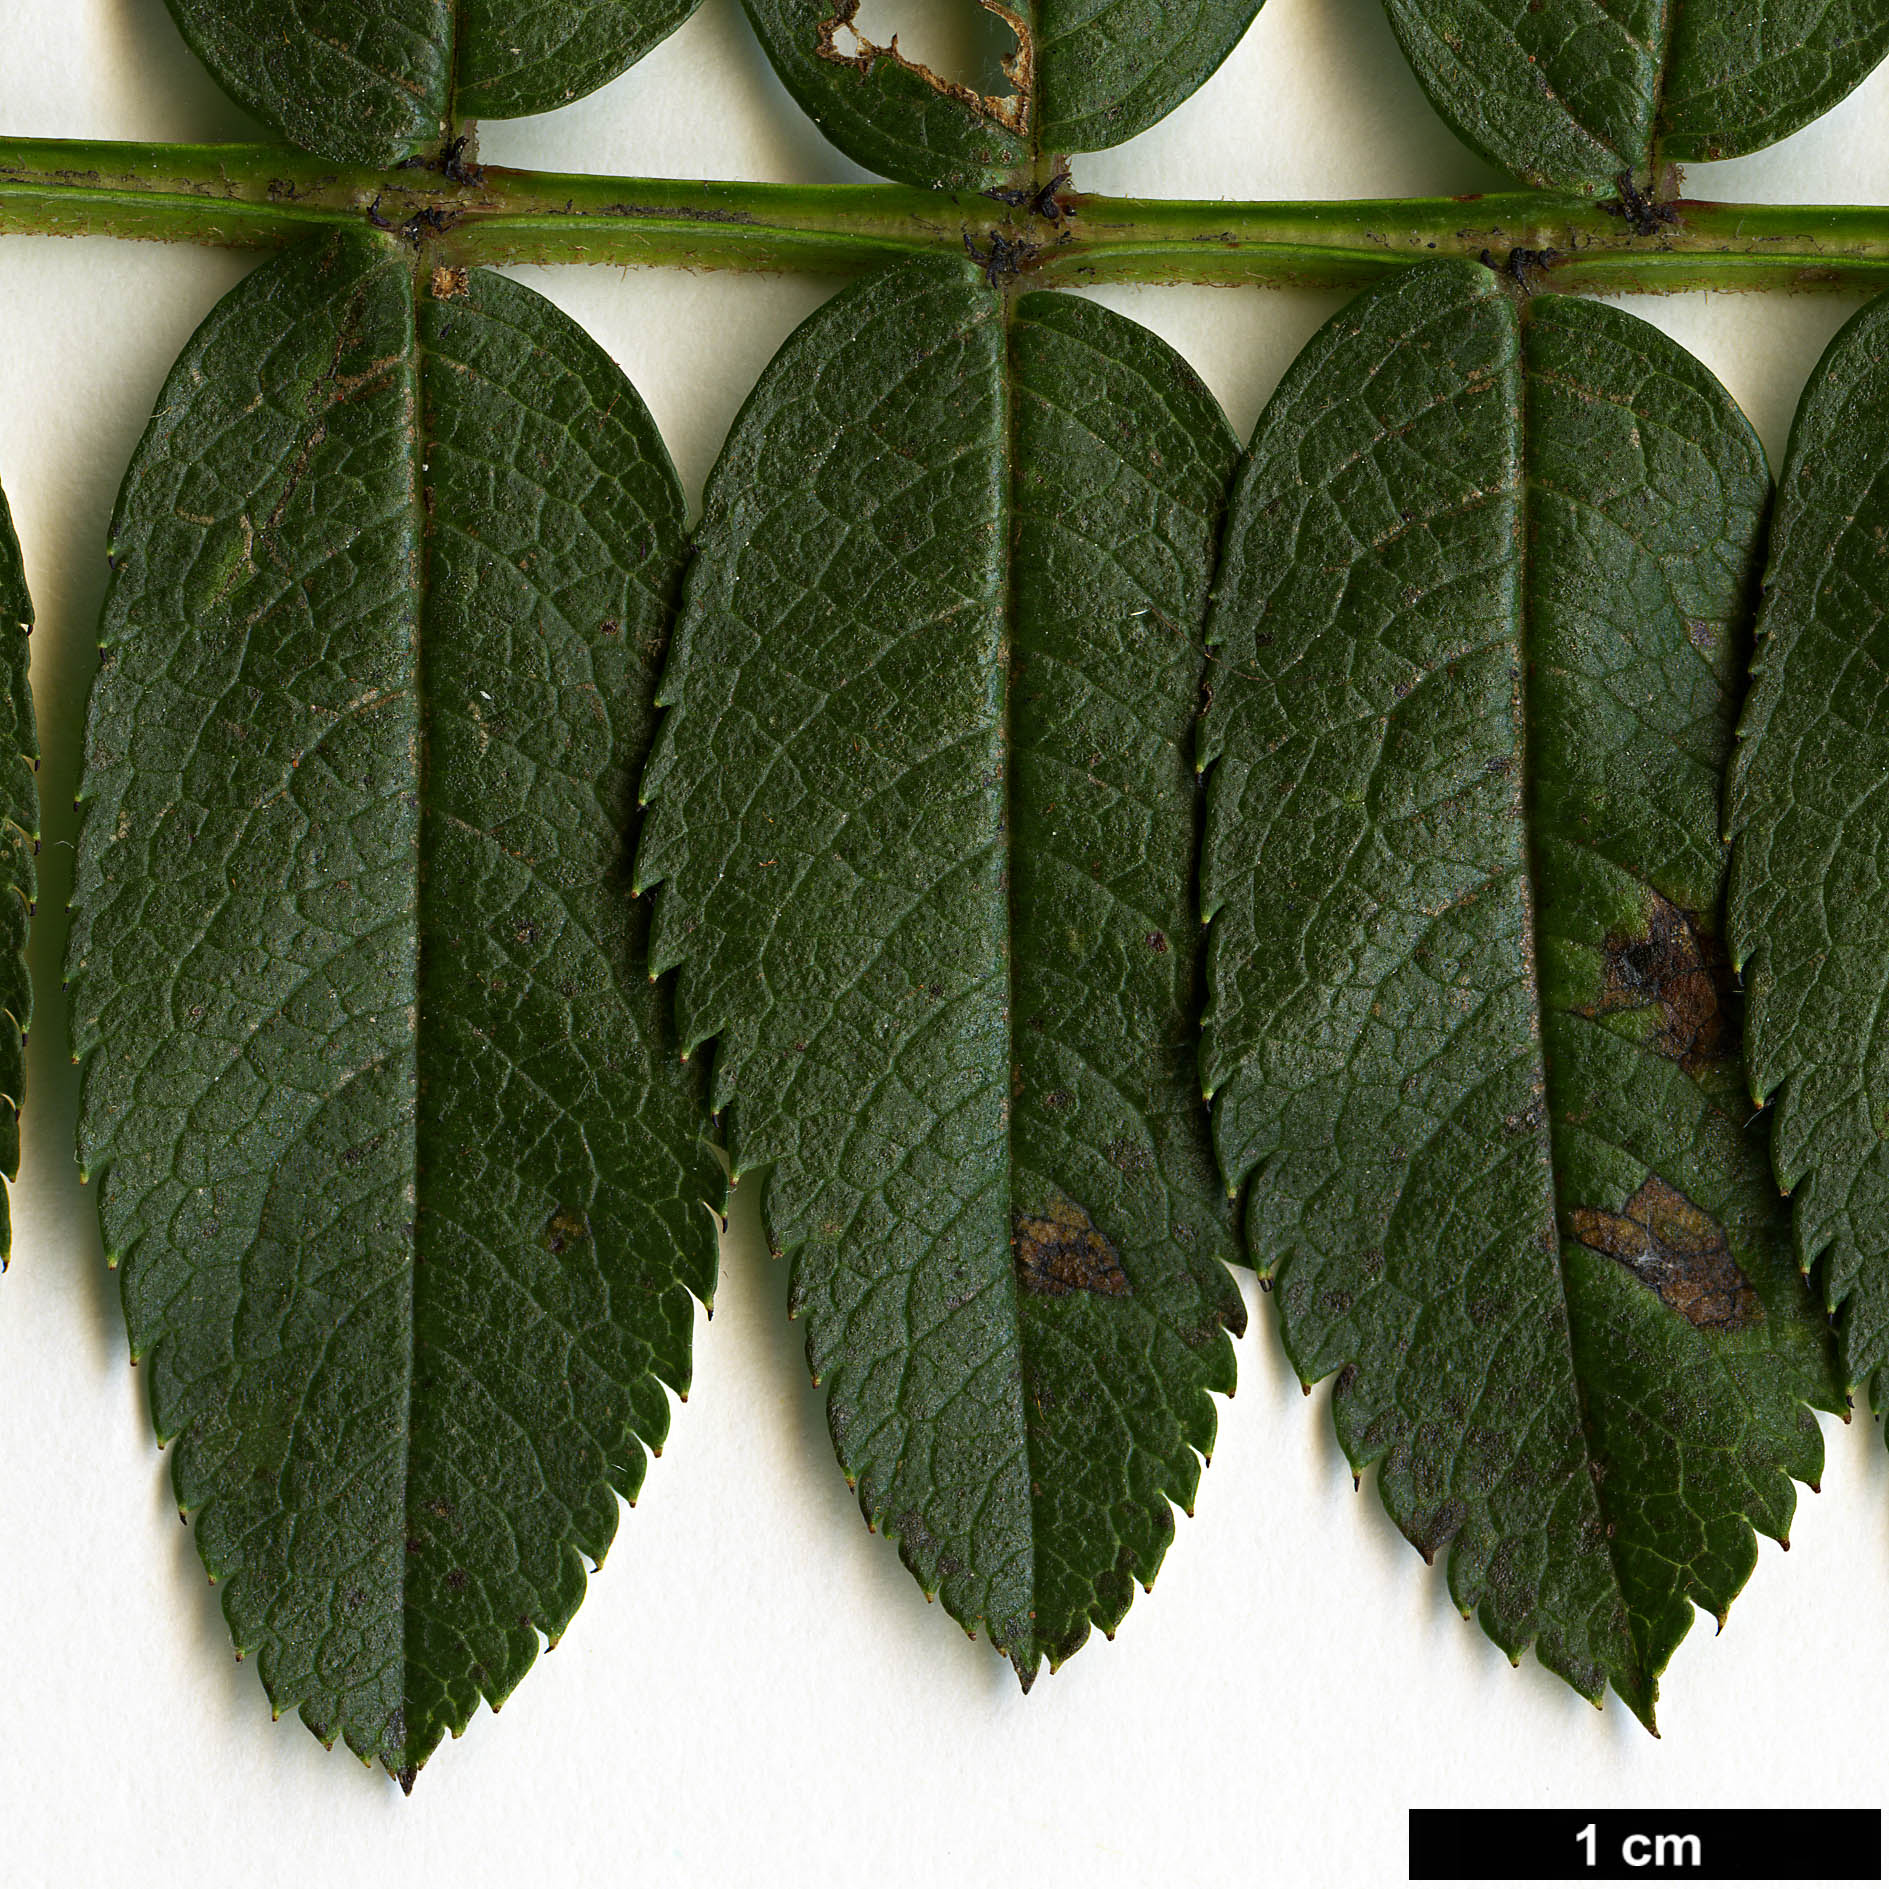 High resolution image: Family: Rosaceae - Genus: Sorbus - Taxon: KR 5000 (S. aff. filipes)